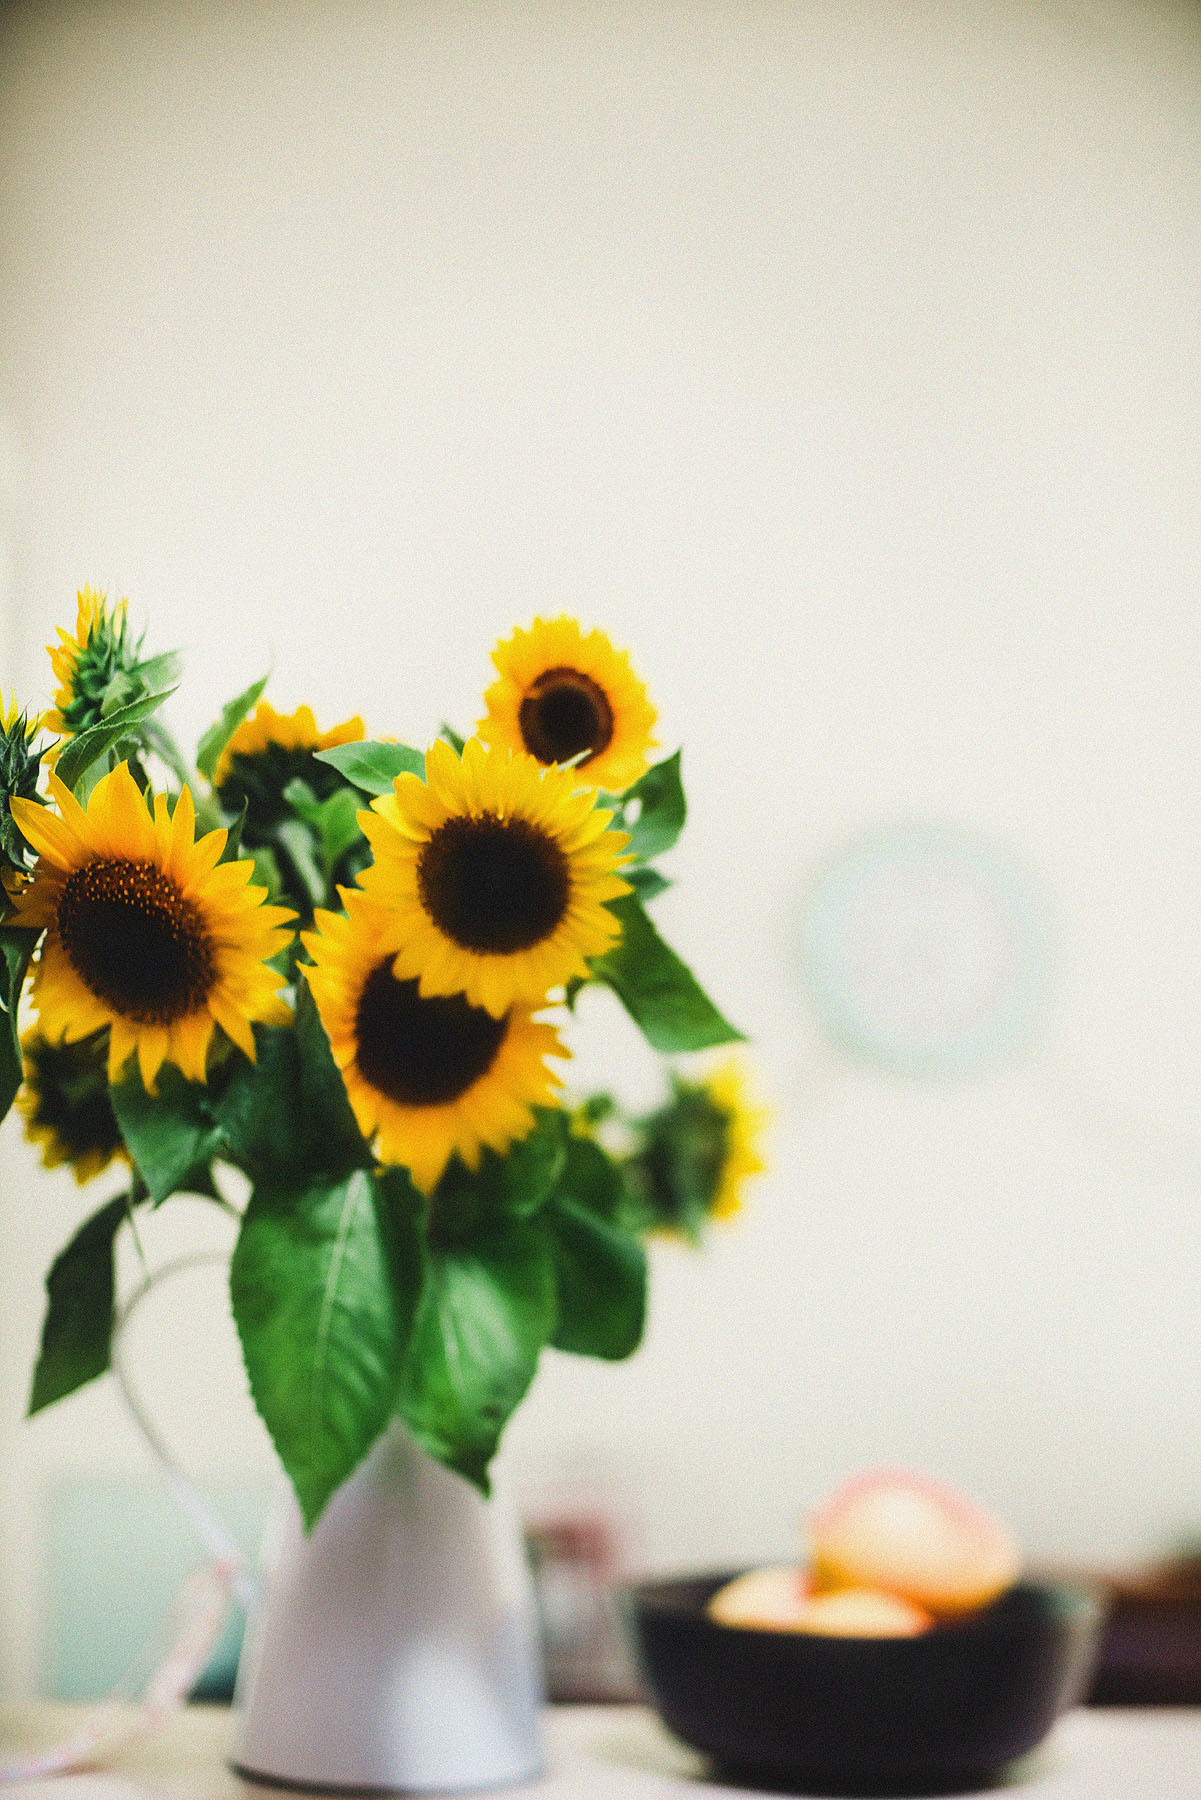 still-life-photography-sunflowers-in-the-kitchen